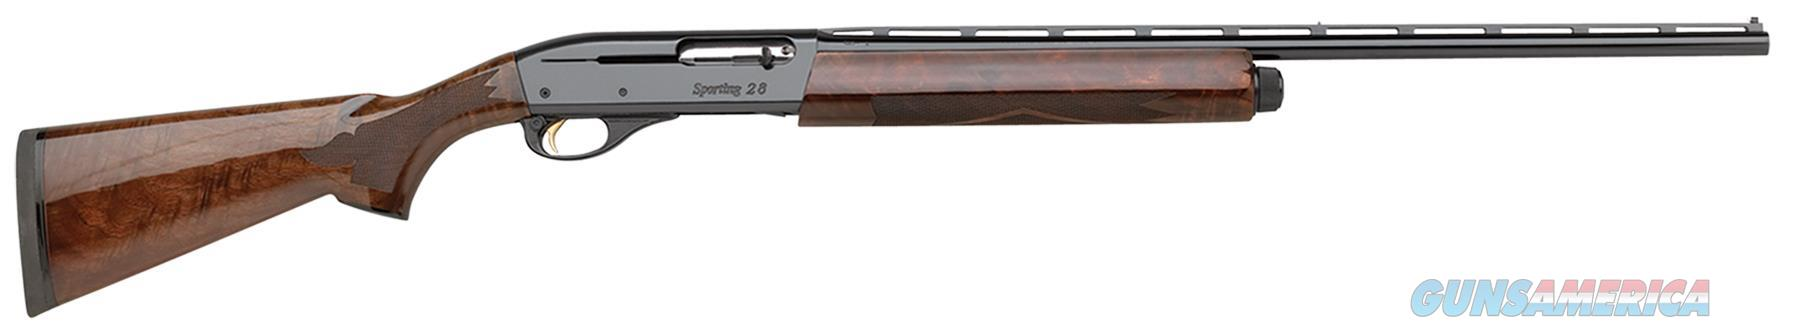 REMINGTON 1100 TGT SPRT 28/27 VR 29583  Guns > Shotguns > Remington Shotguns  > Autoloaders > Hunting